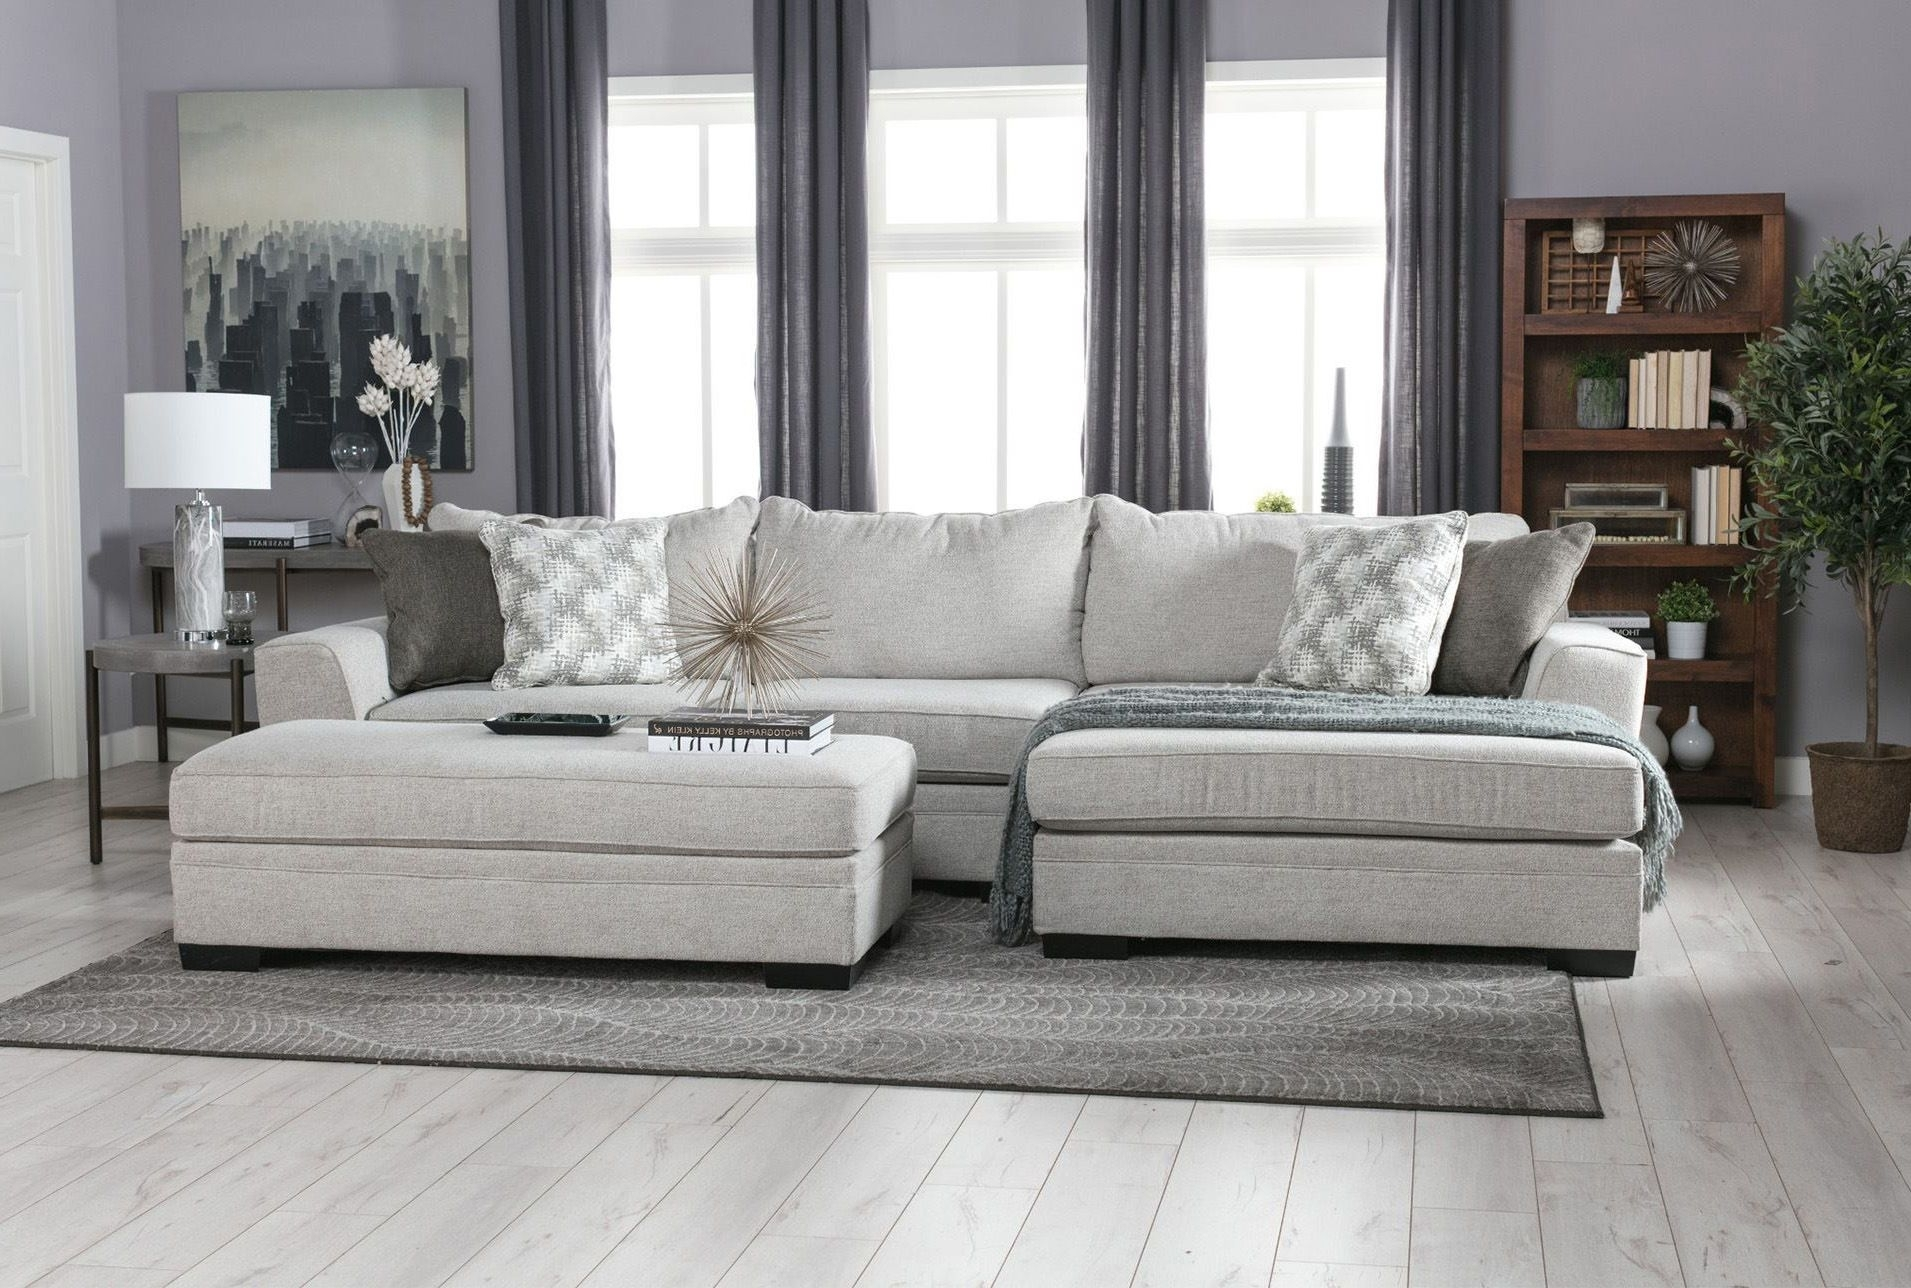 Delano 2 Piece Sectional W/raf Oversized Chaise | Living Room Ideas With Delano 2 Piece Sectionals With Raf Oversized Chaise (View 3 of 25)